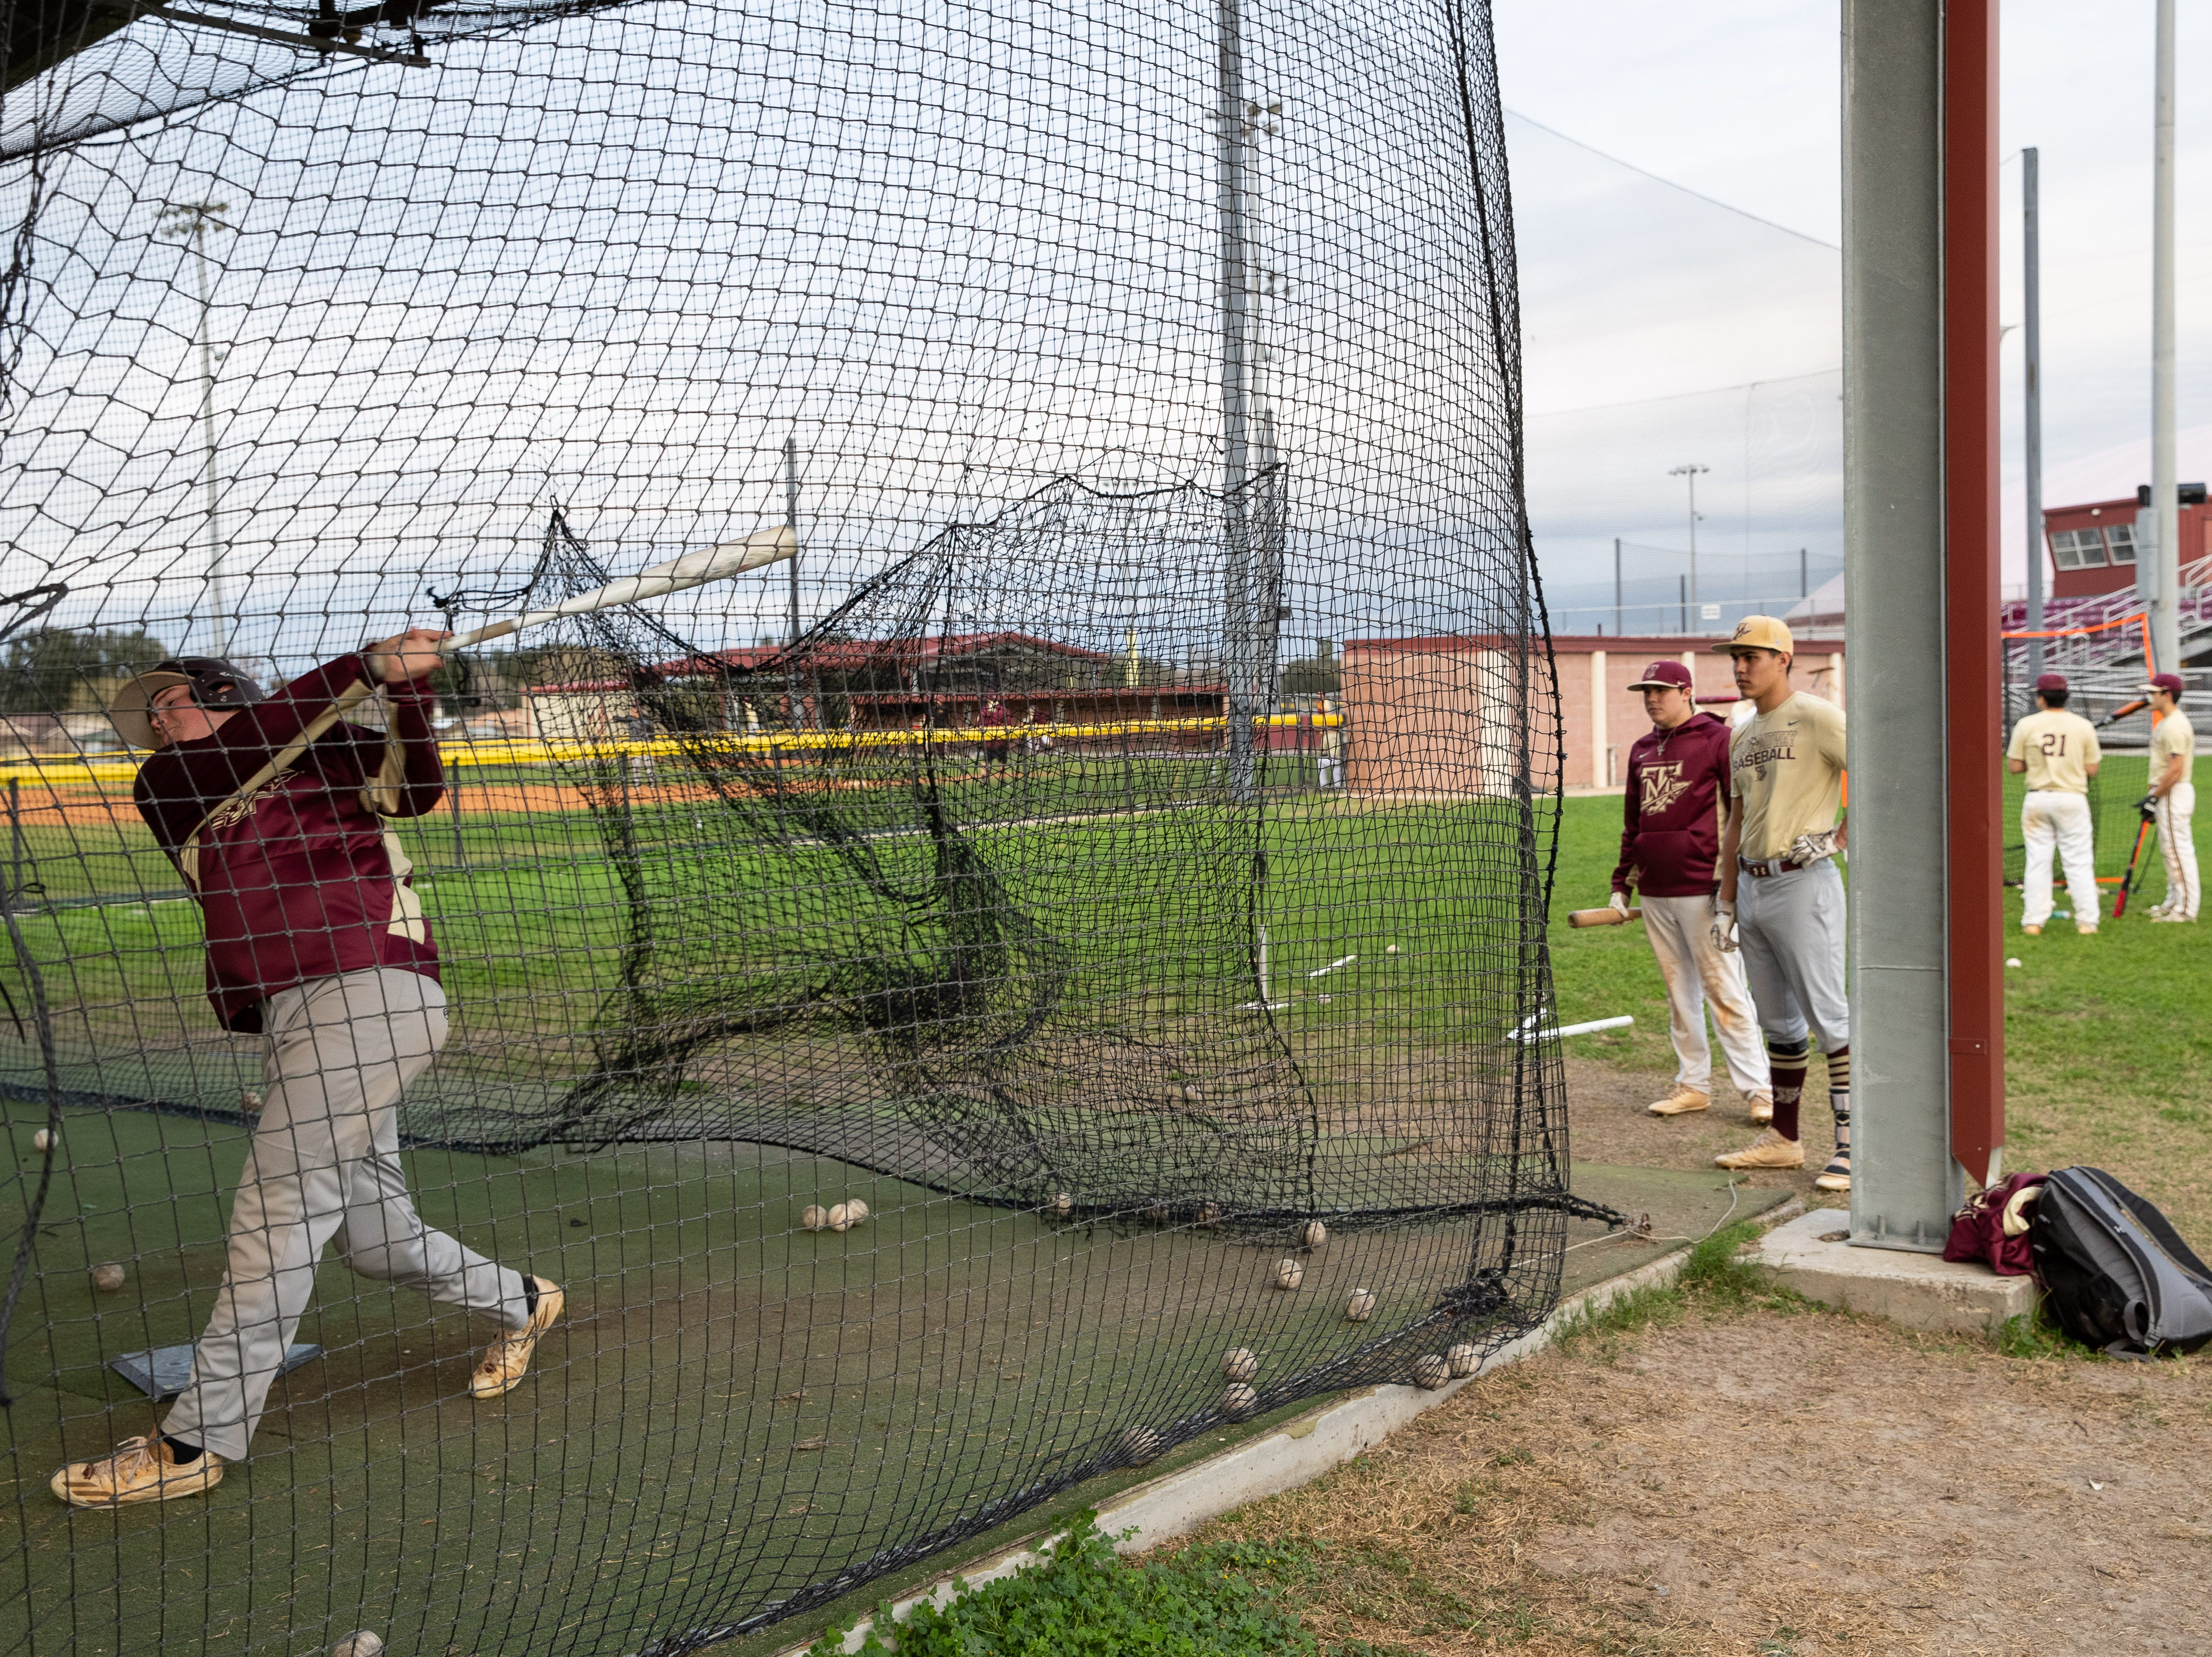 Tuloso-Midway baseball team during batting practice on Thursday, Feb. 7, 2019.